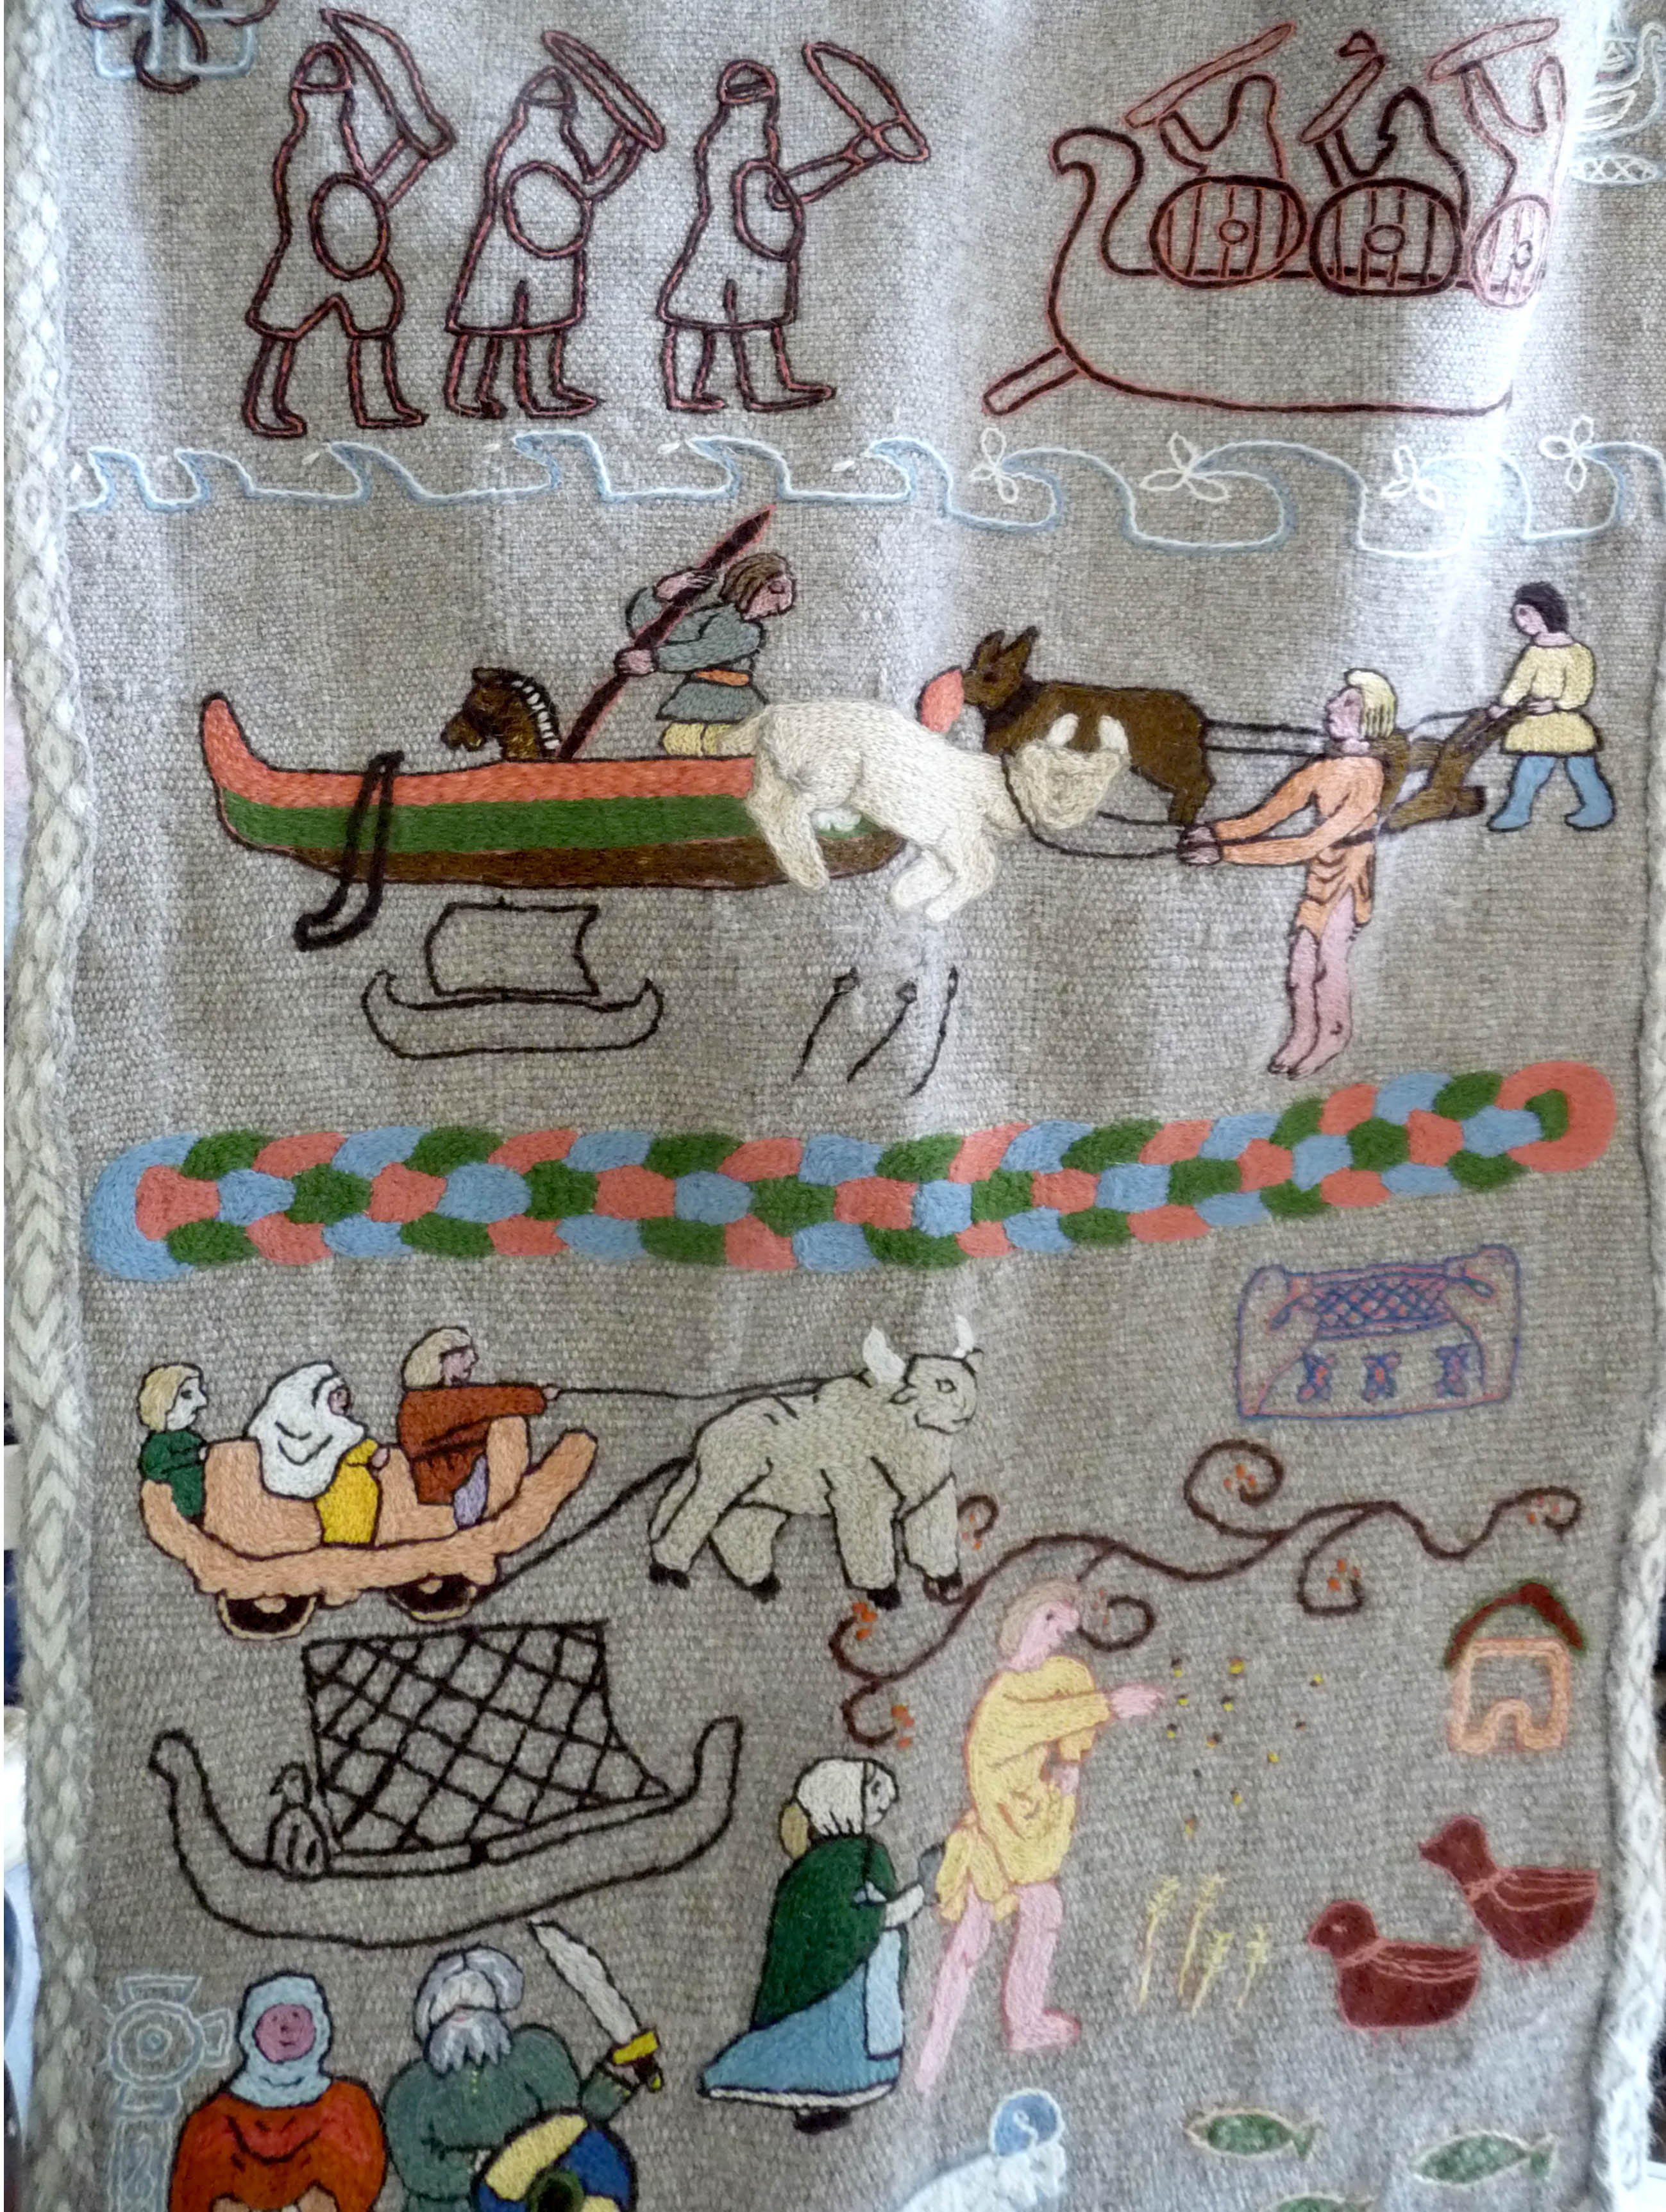 This is Snorri's Viking journey in stitch, embroidered by his wife on fabric woven on a Viking loom